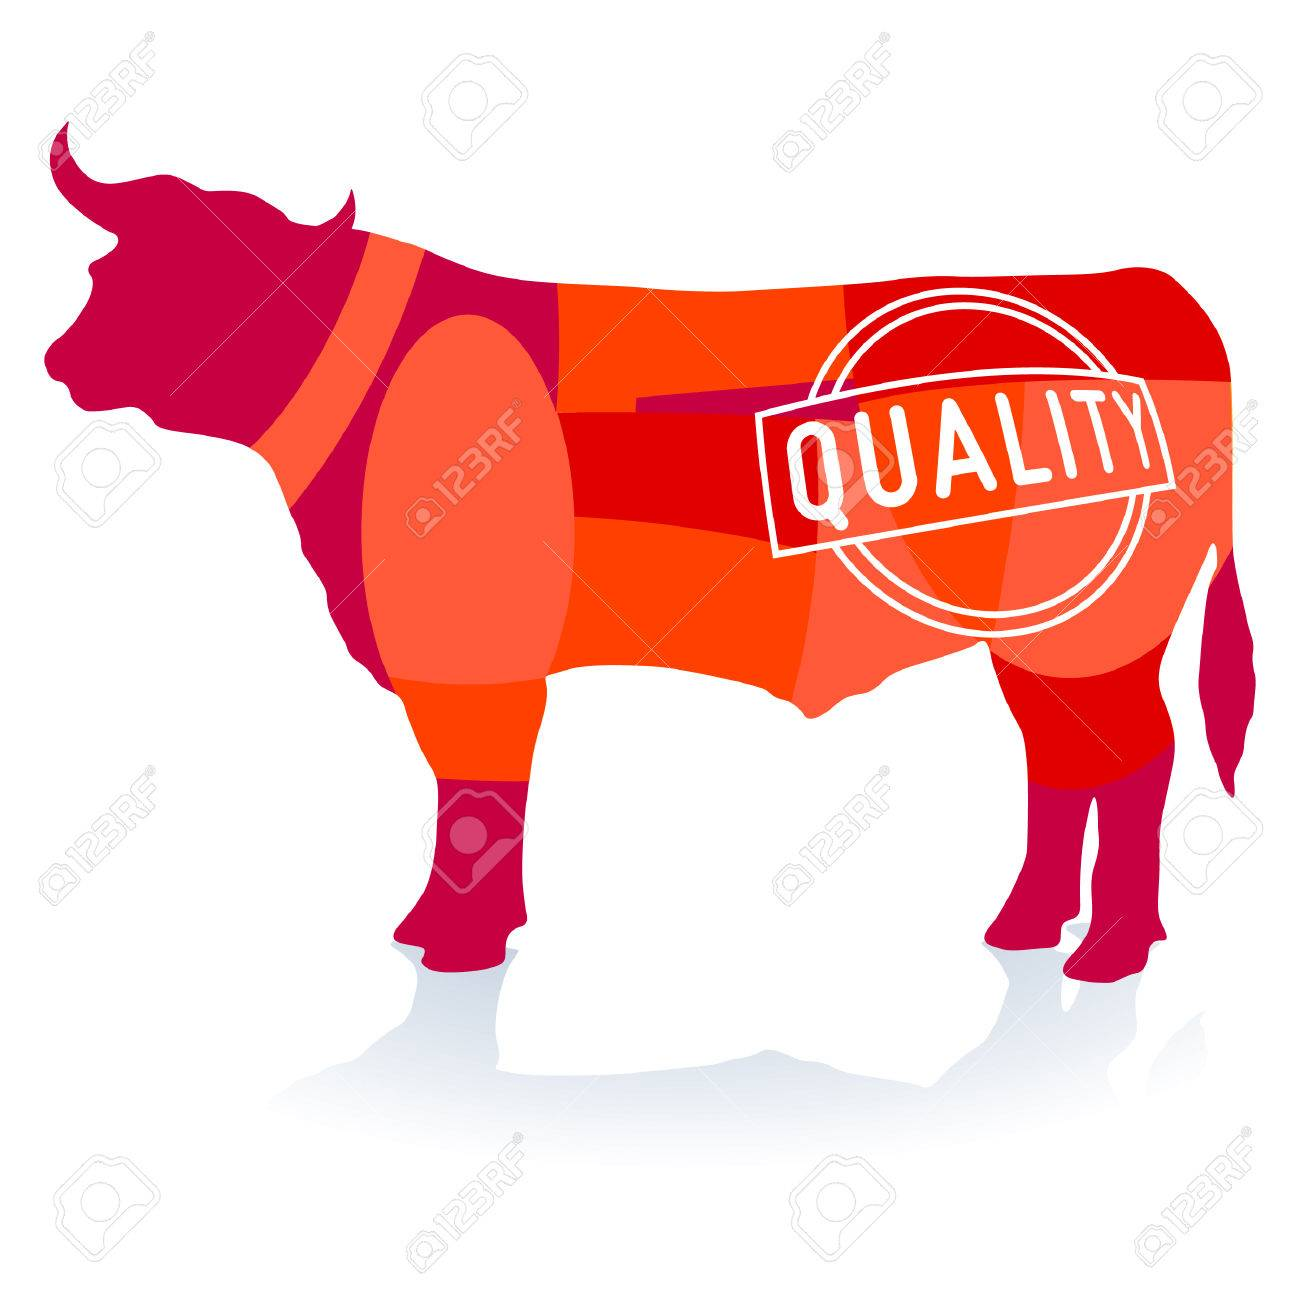 Quality Beef Stock Vector - 8038749